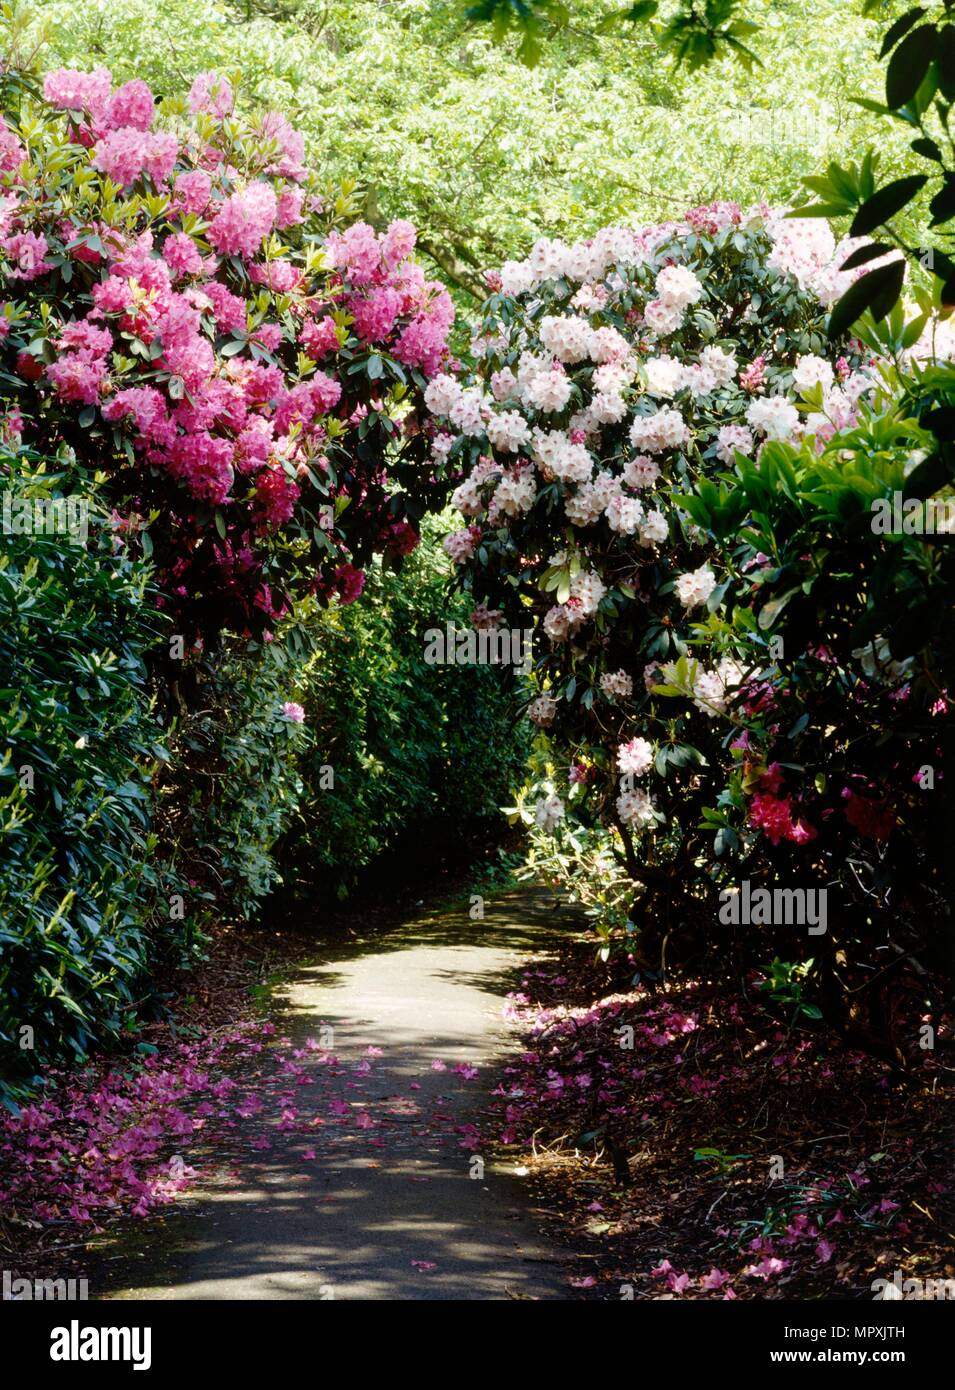 Rhododendrons lining a path in the gardens of Kenwood House, Hampstead, London, c1990-c2010. Artist: Nigel Corrie. - Stock Image